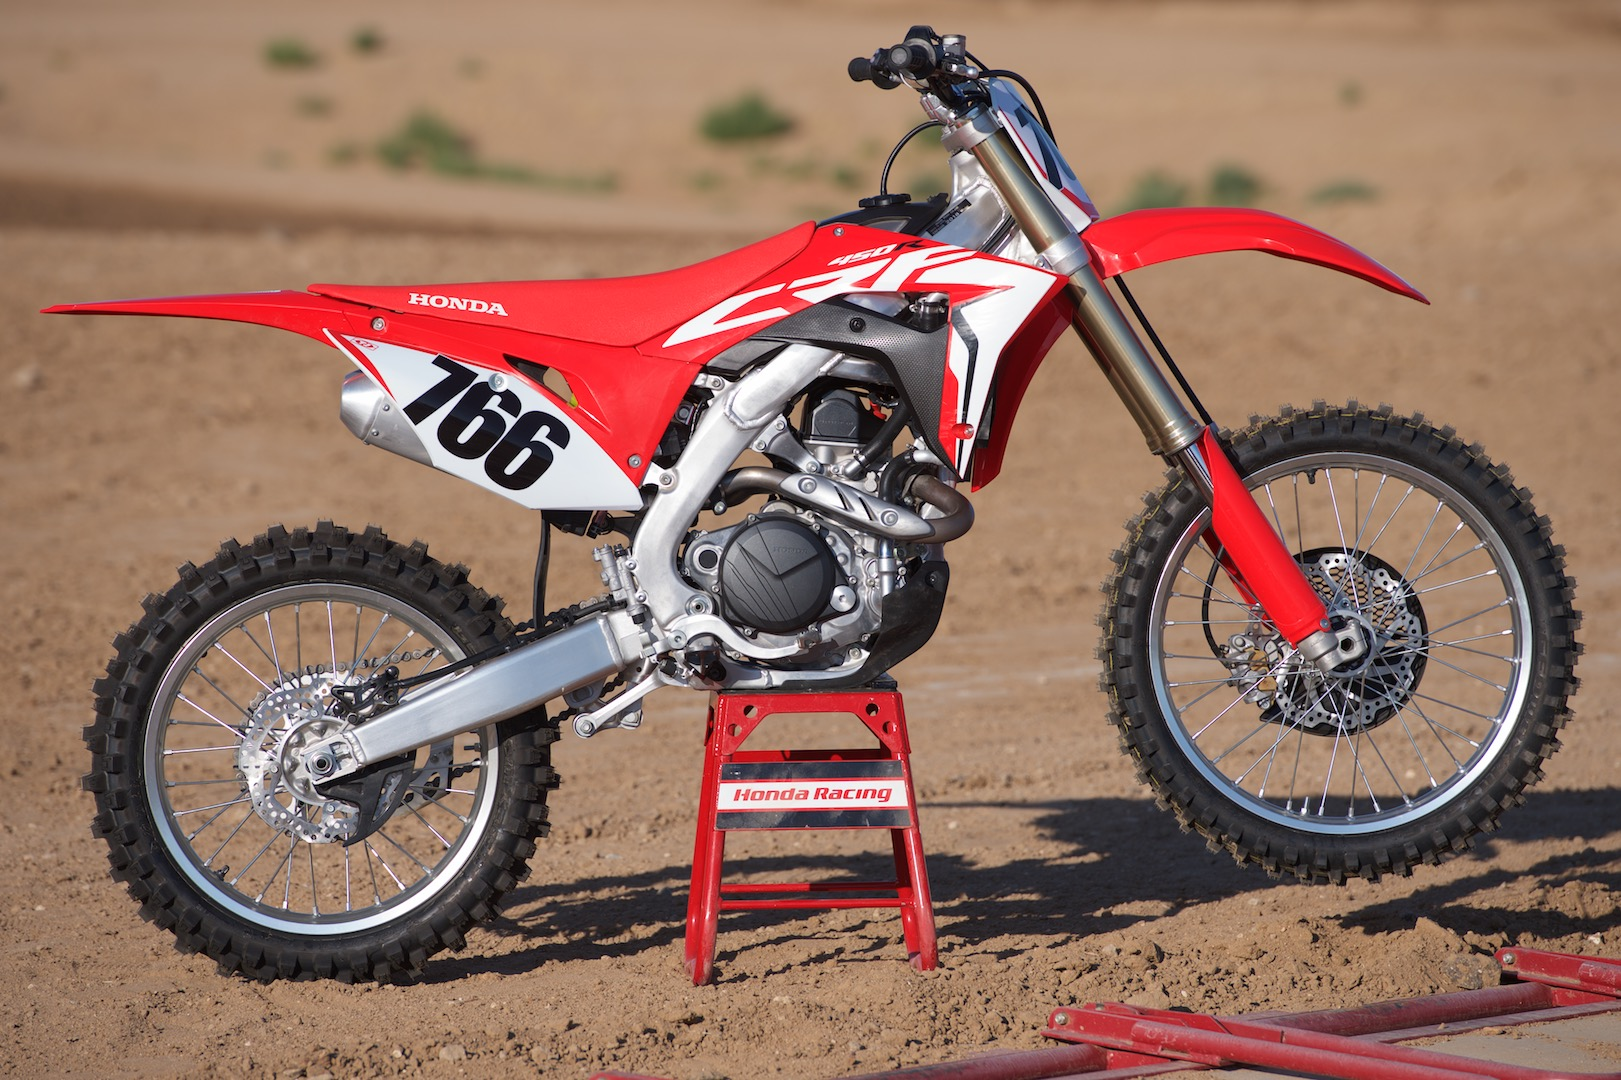 2018 honda crf450r first ride review 10 fast facts. Black Bedroom Furniture Sets. Home Design Ideas